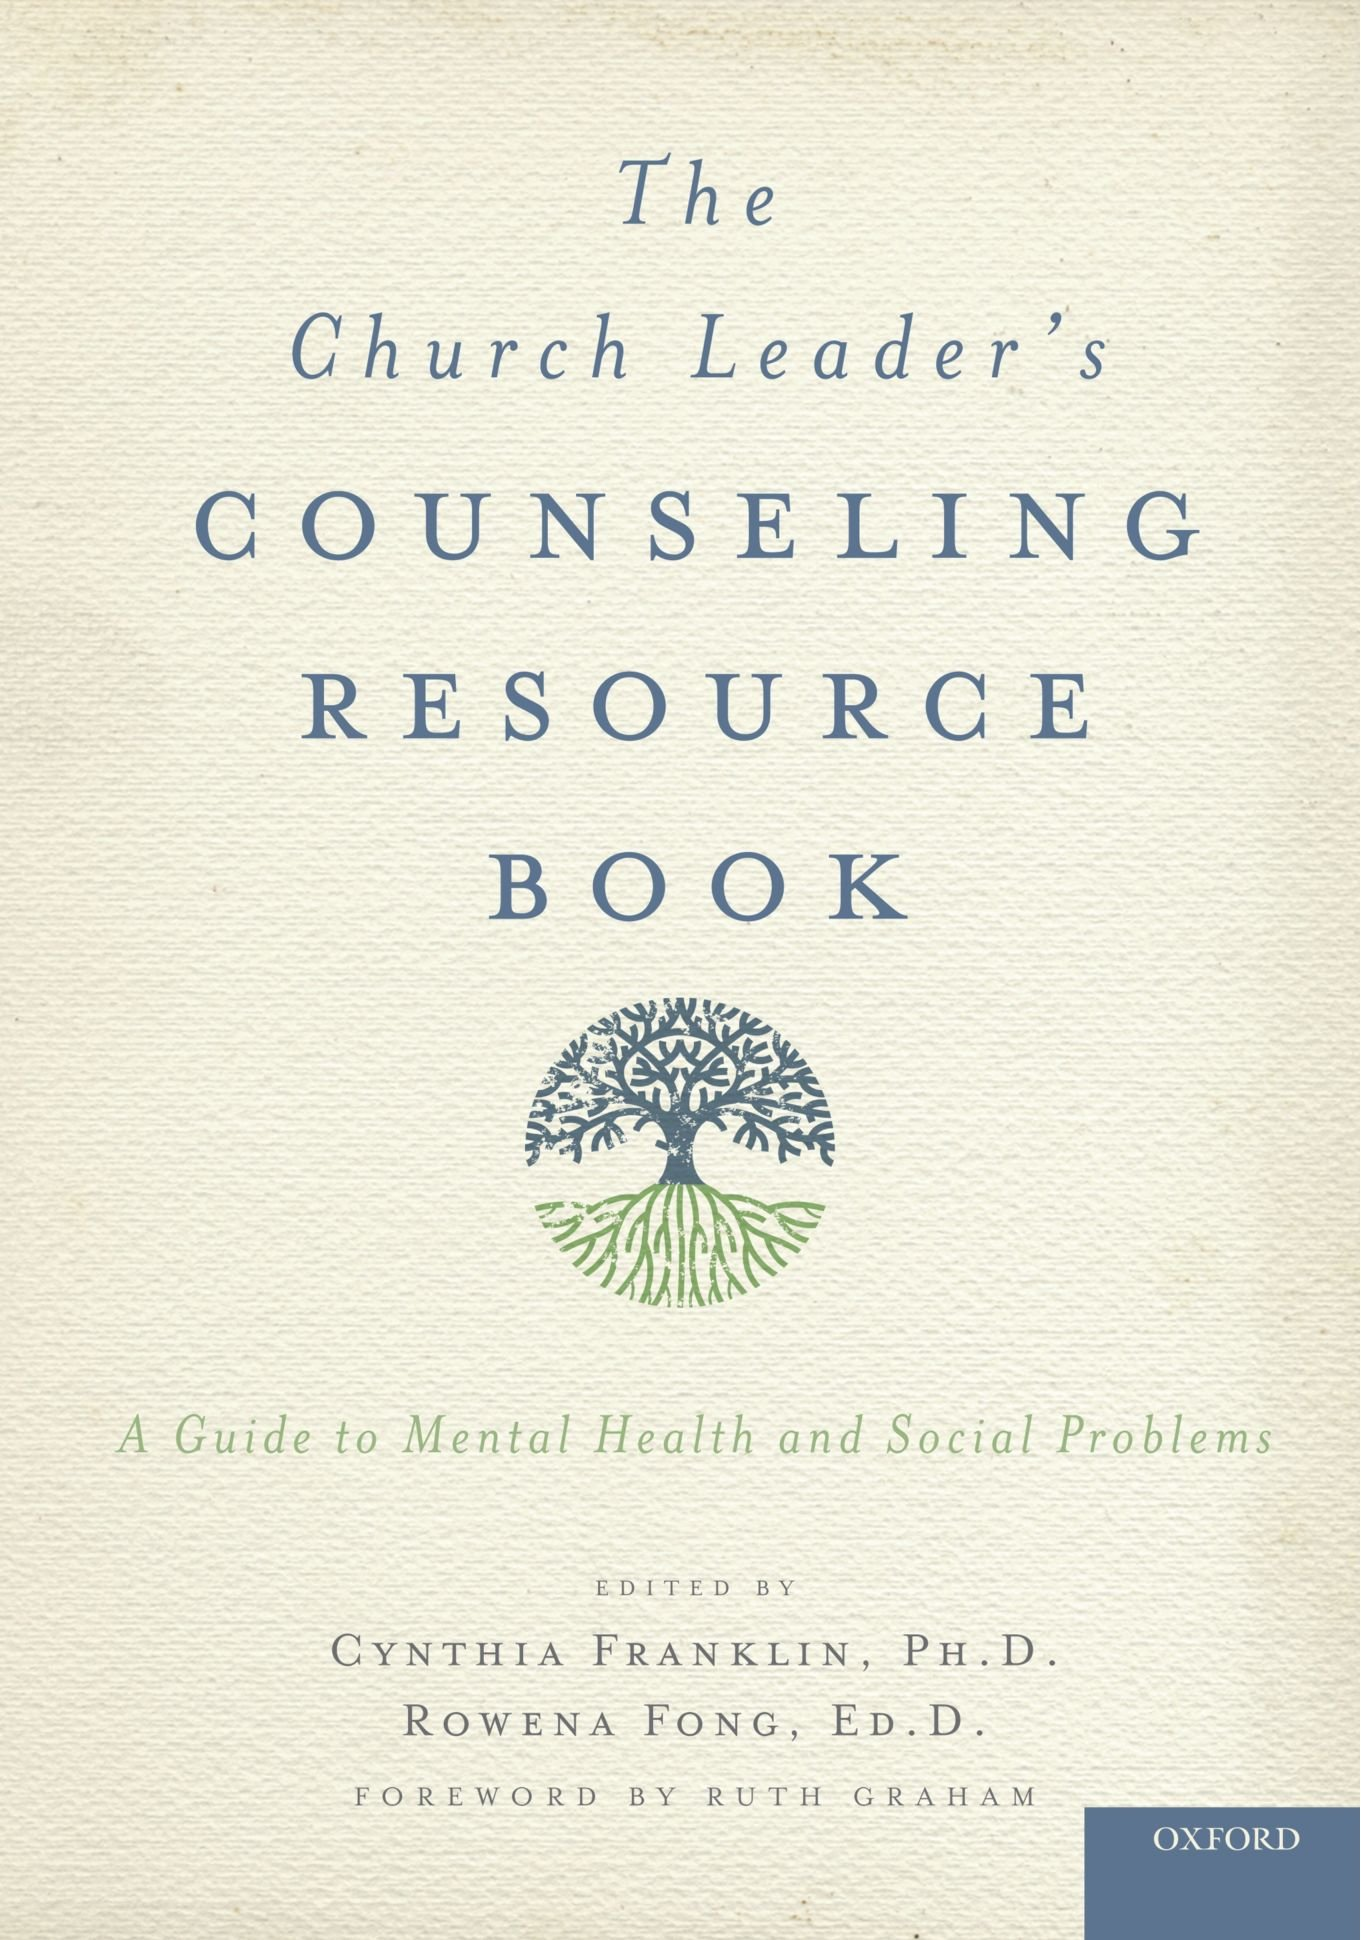 The Church Leader's Counseling Resource Book: A Guide to Mental Health and Social Problems by Oxford University Press